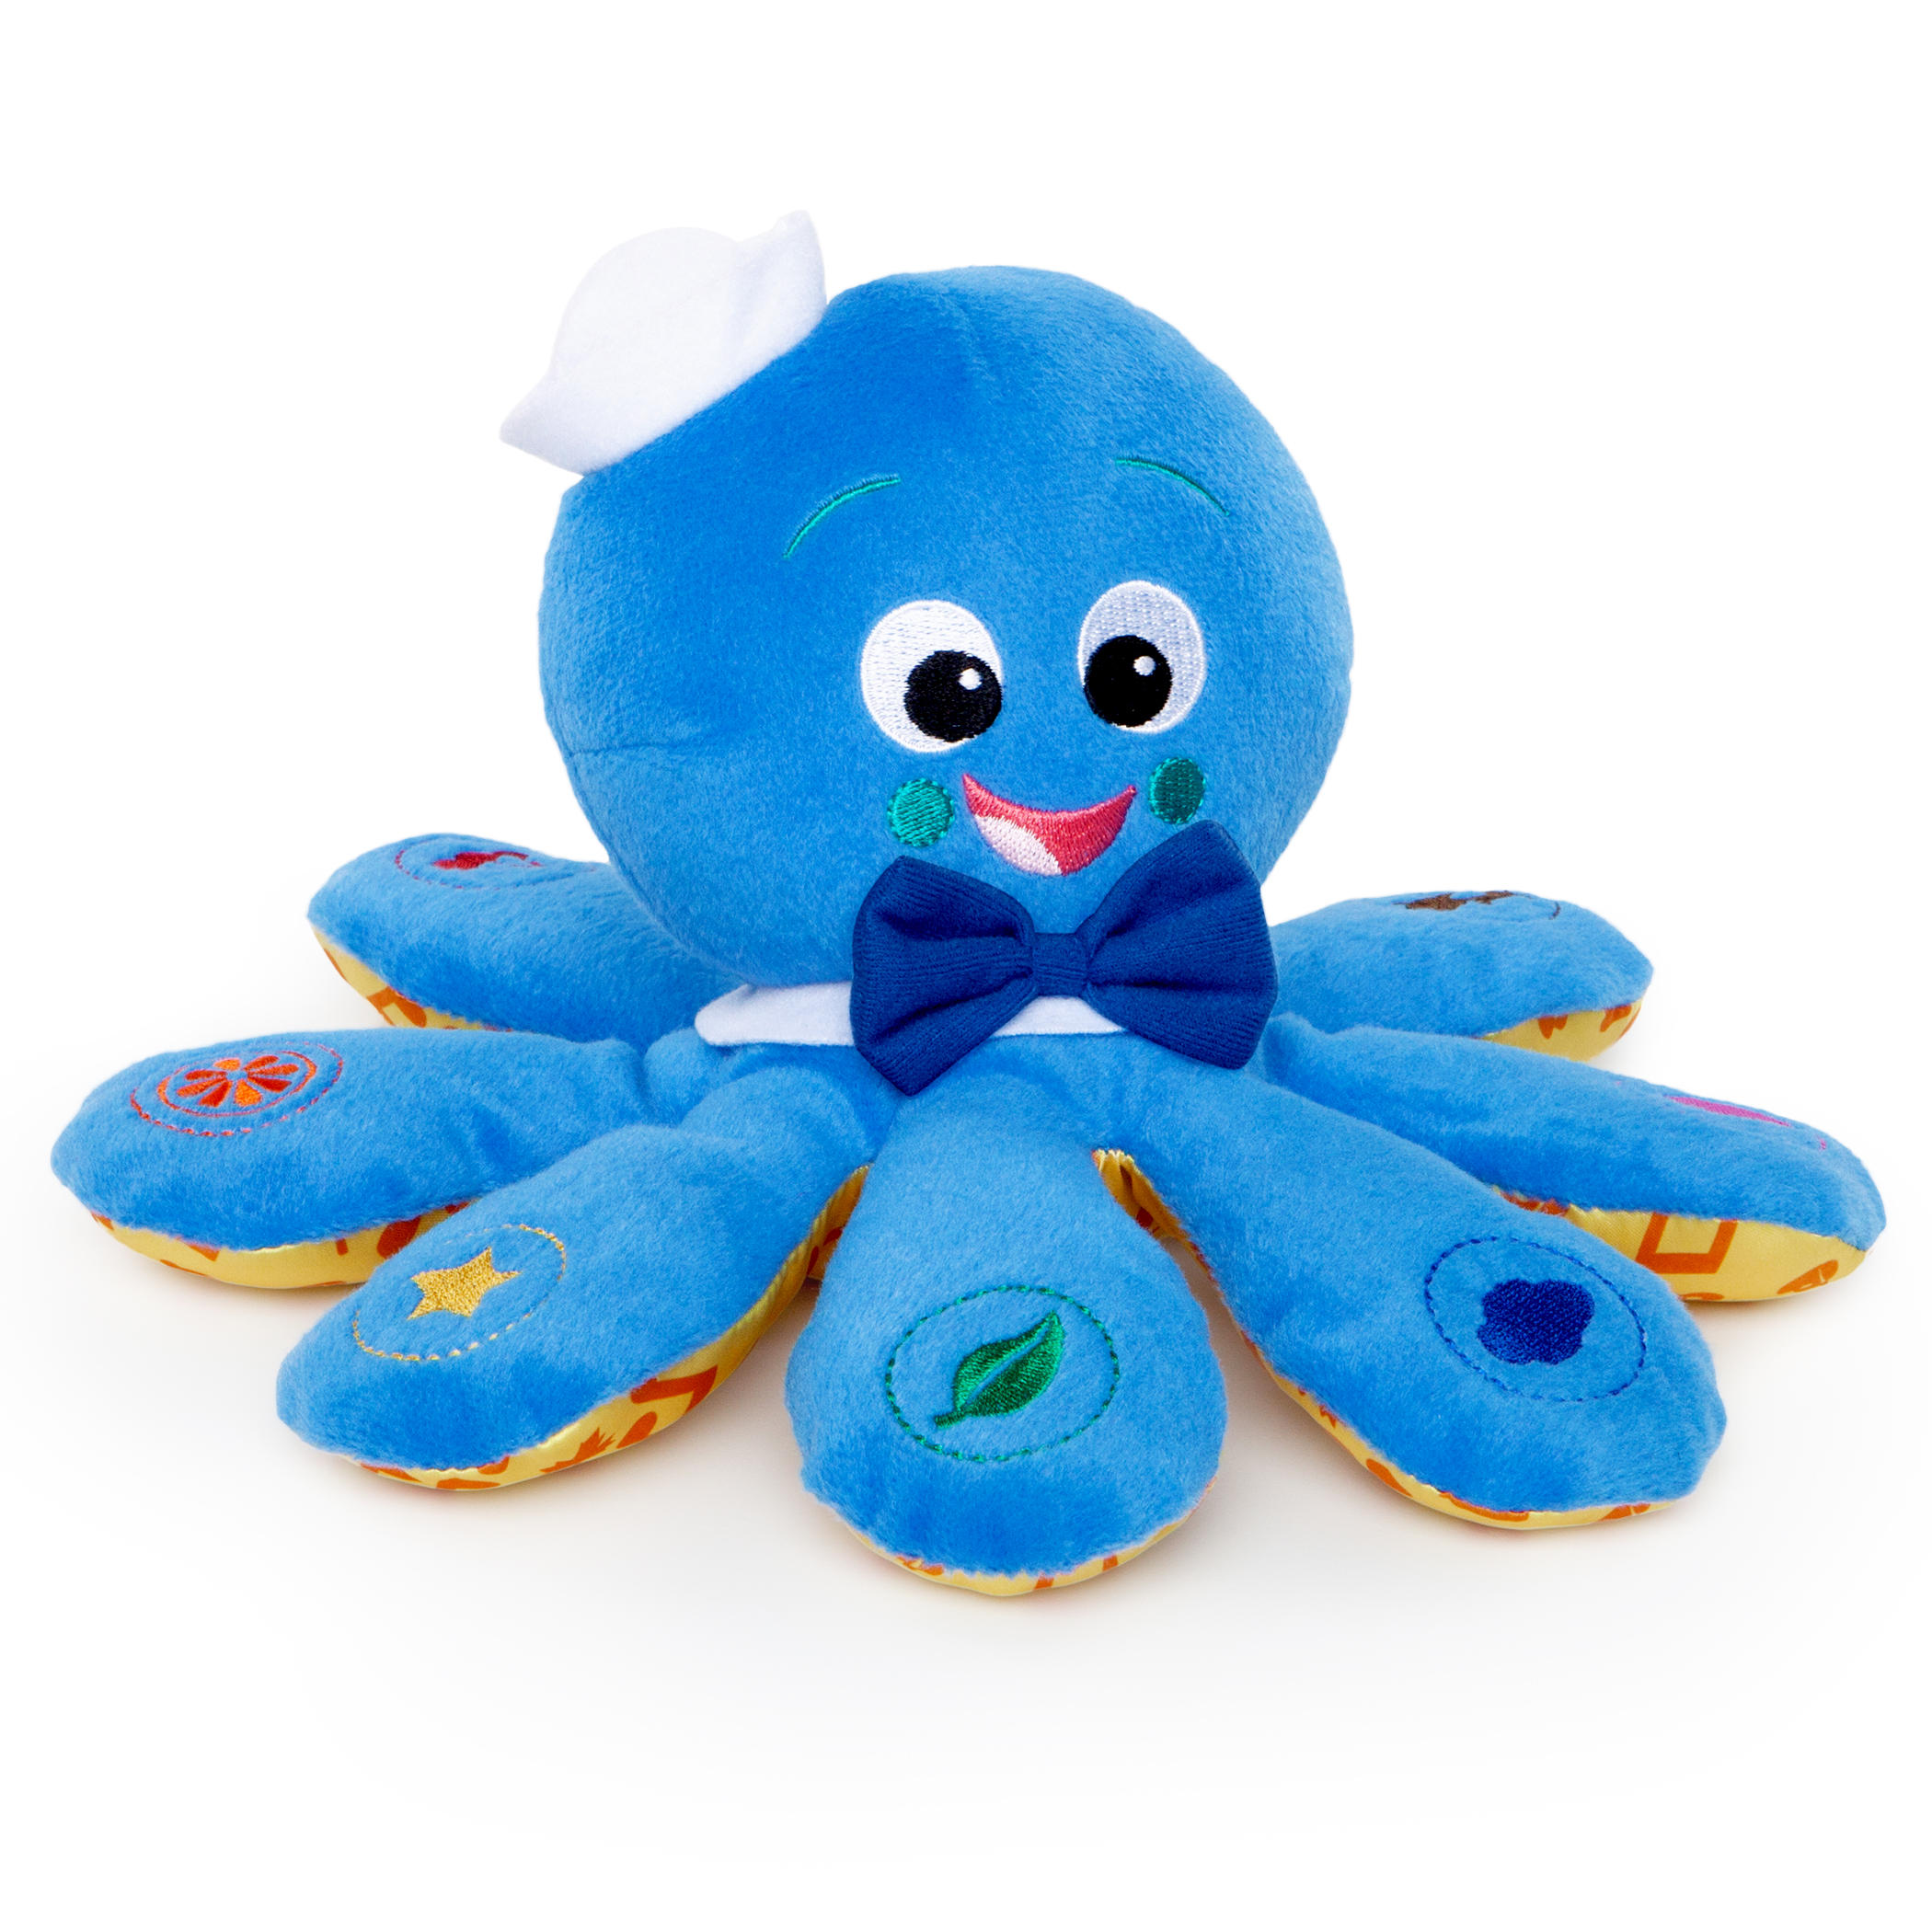 Baby Einstein Octoplush Musical Plush Toy